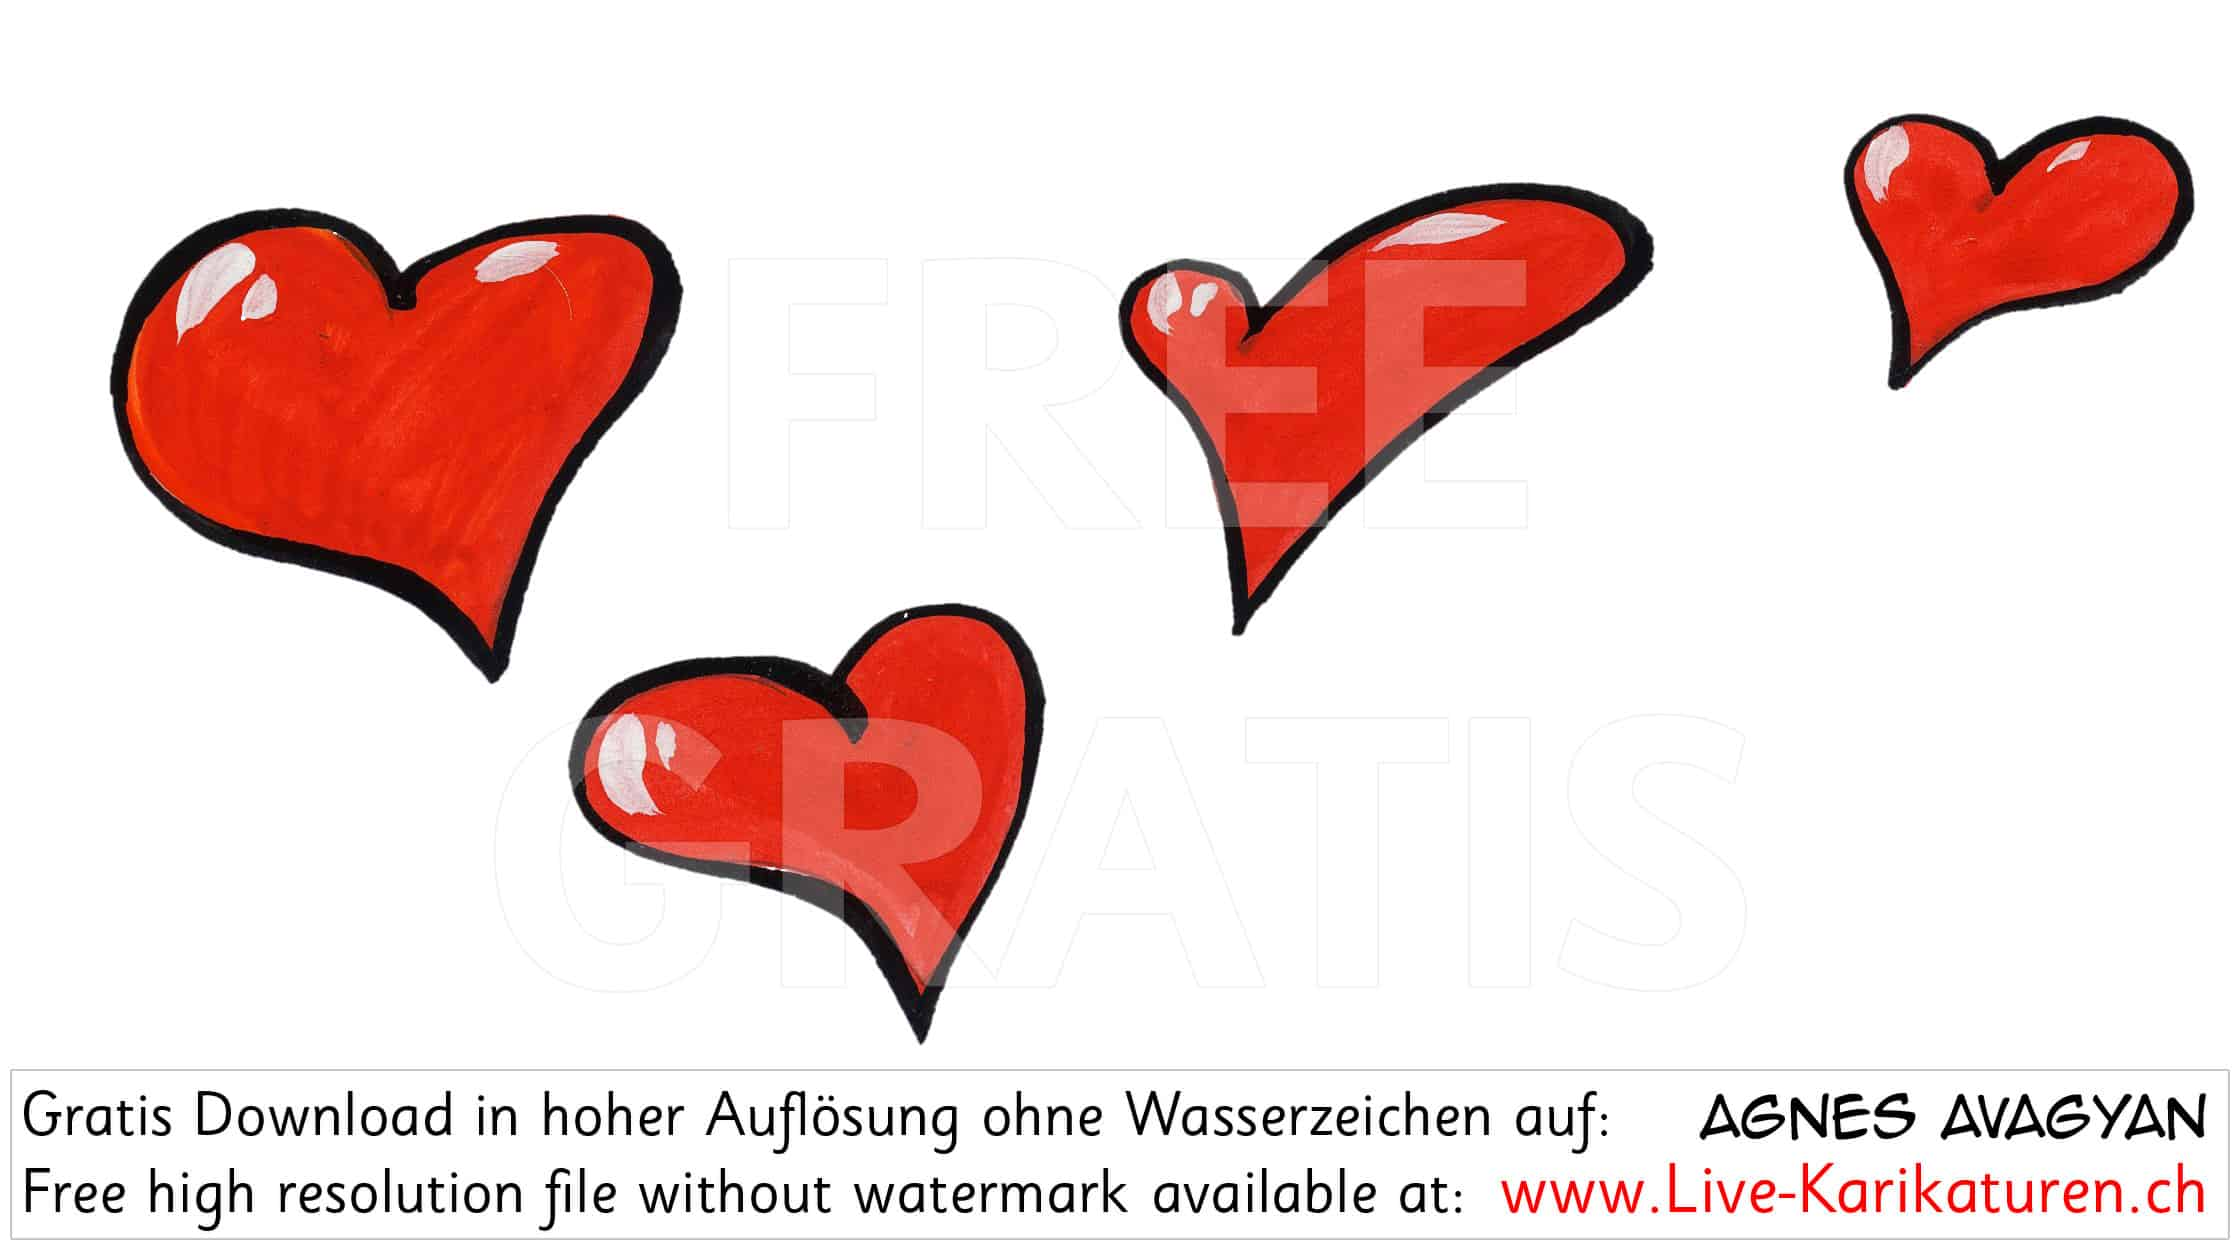 herzchen comic gruppe 4 liebe hochzeit agnes live free clipart downloads bing free clipart downloads for silhouette